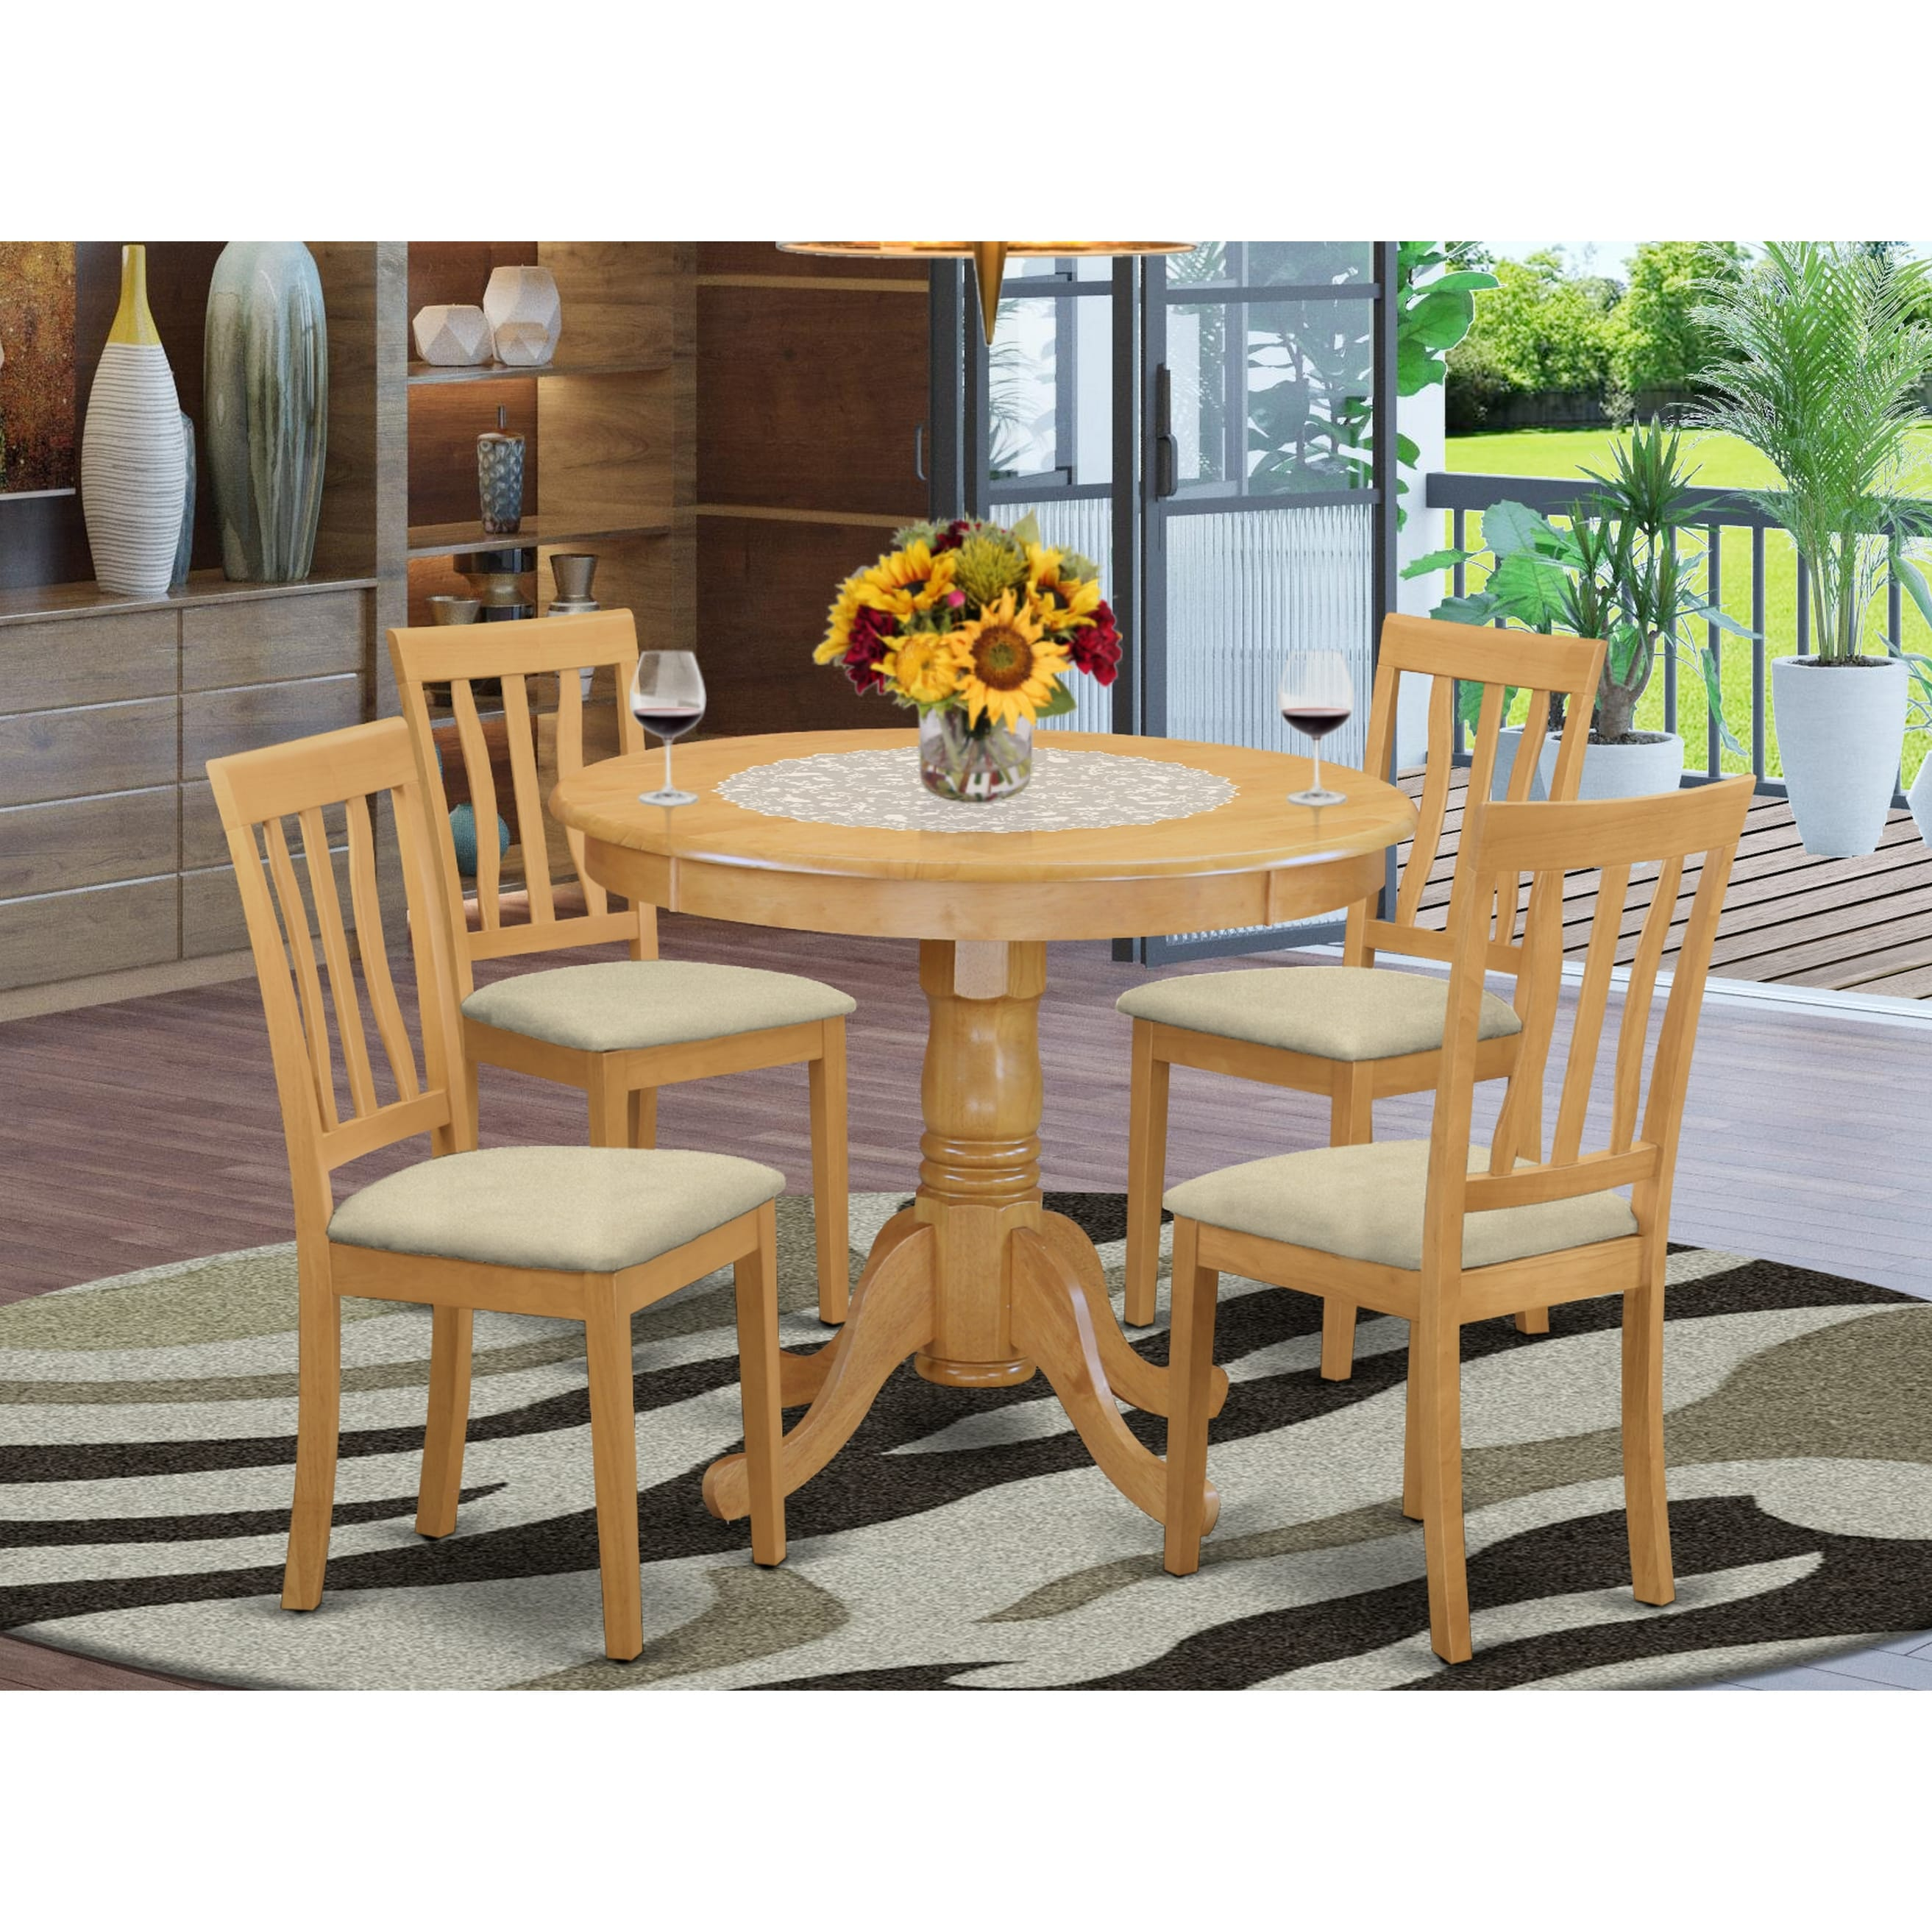 5 Pc Dining Set Kitchen Table And 4 Chairs In Oak Finish Overstock 10201204